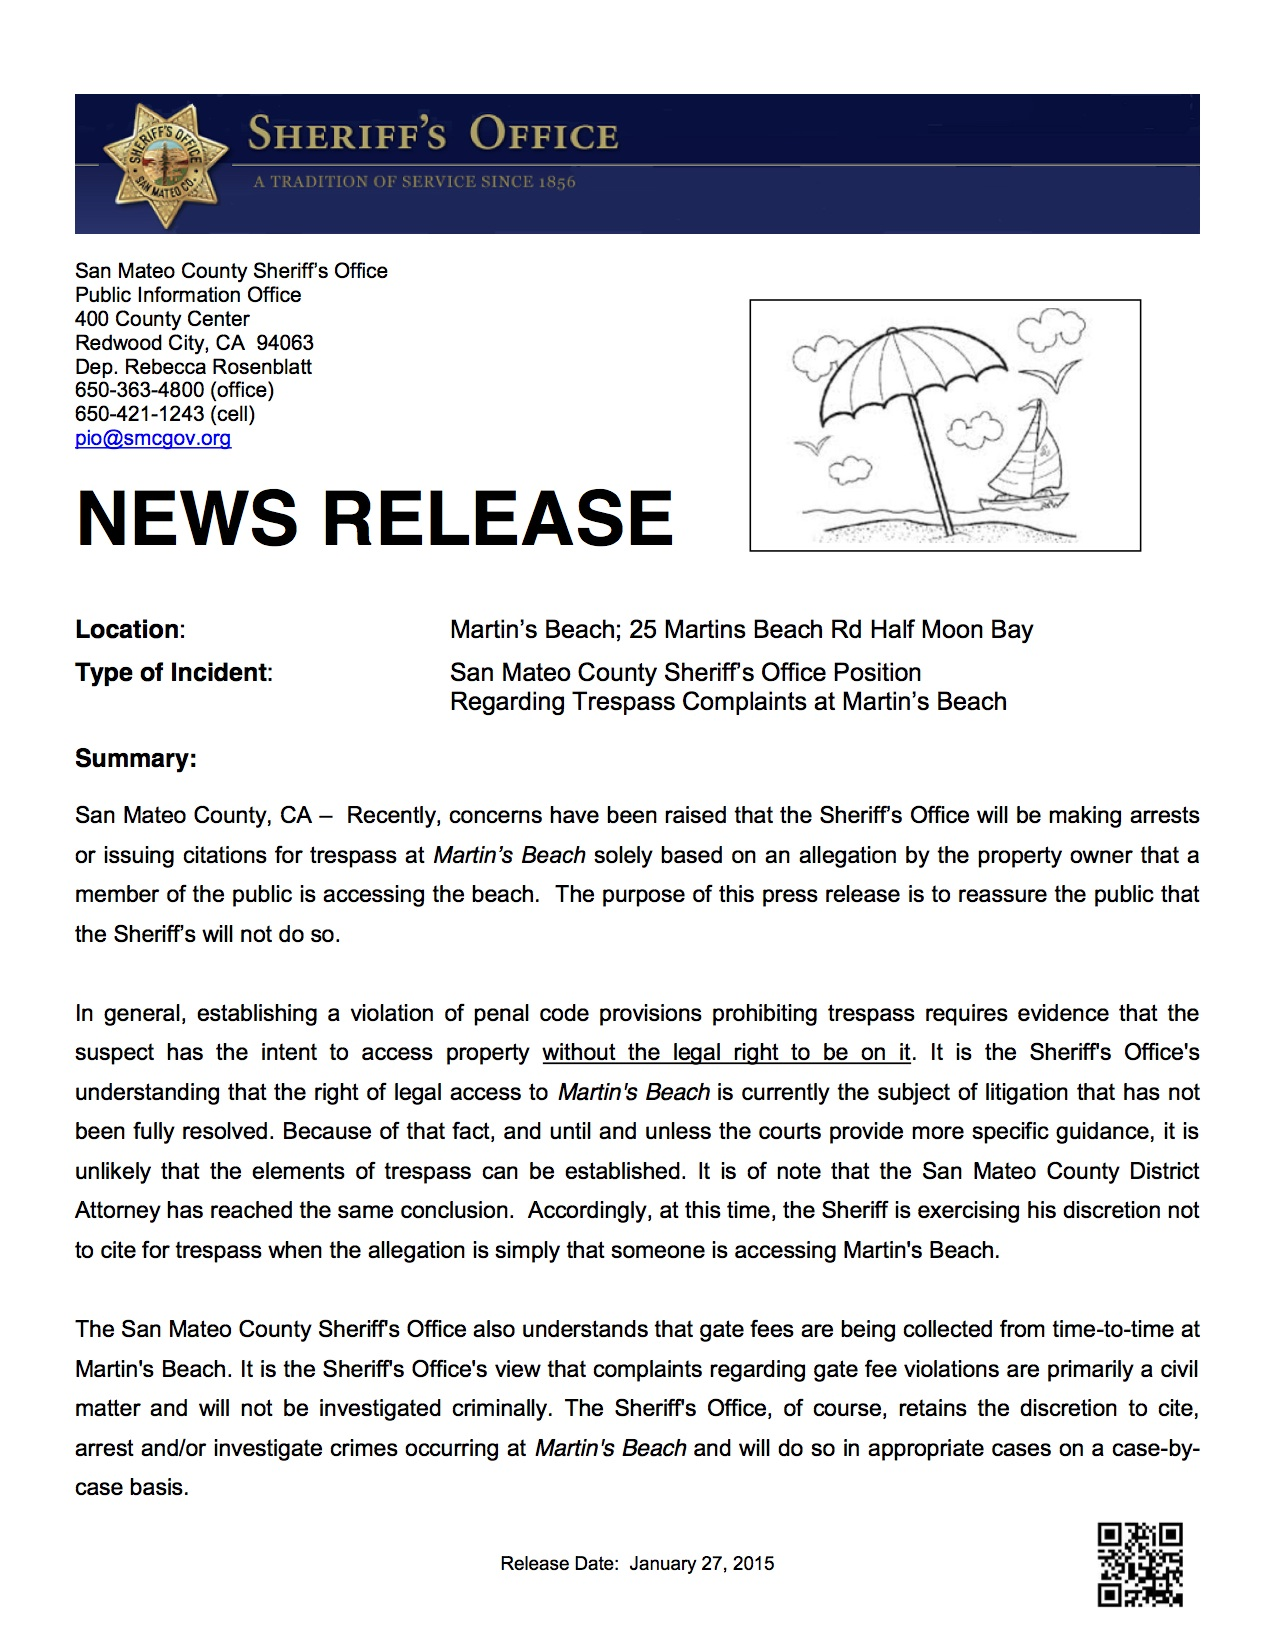 01-27-2015 SMSO Protocol Regarding Martins Beach